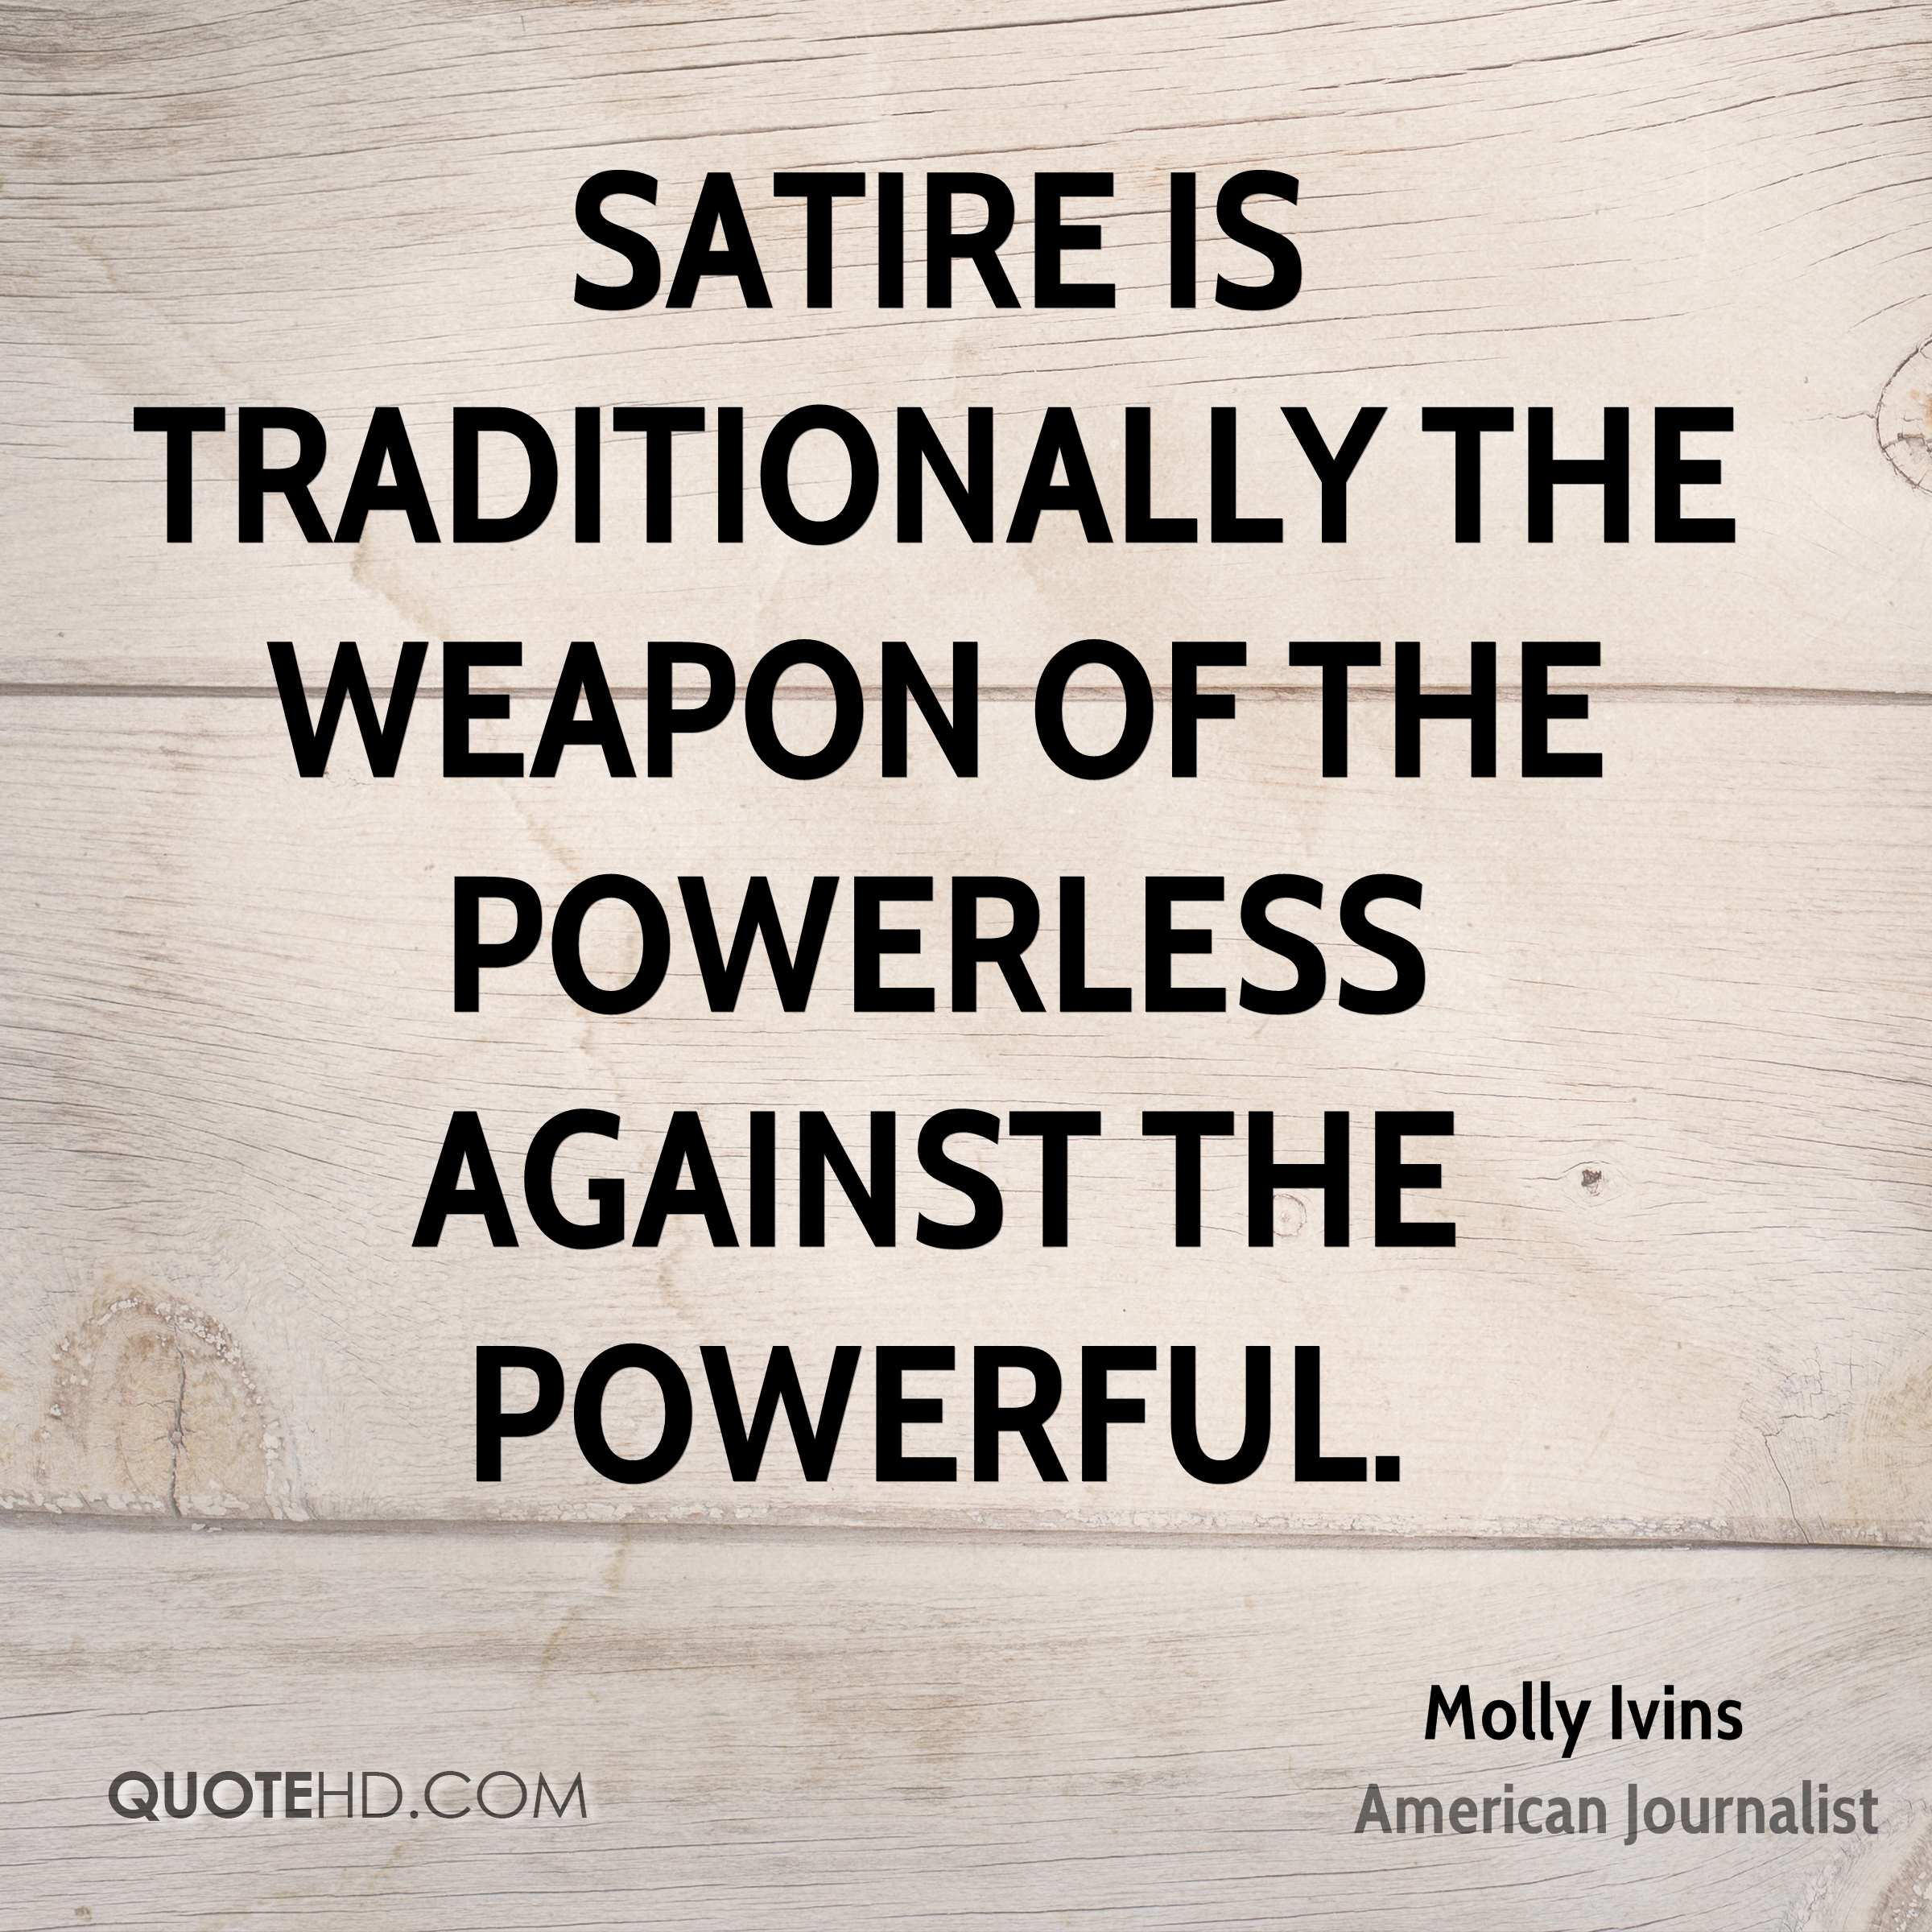 molly-ivins-journalist-quote-satire-is-traditionally-the-weapon-of.jpg